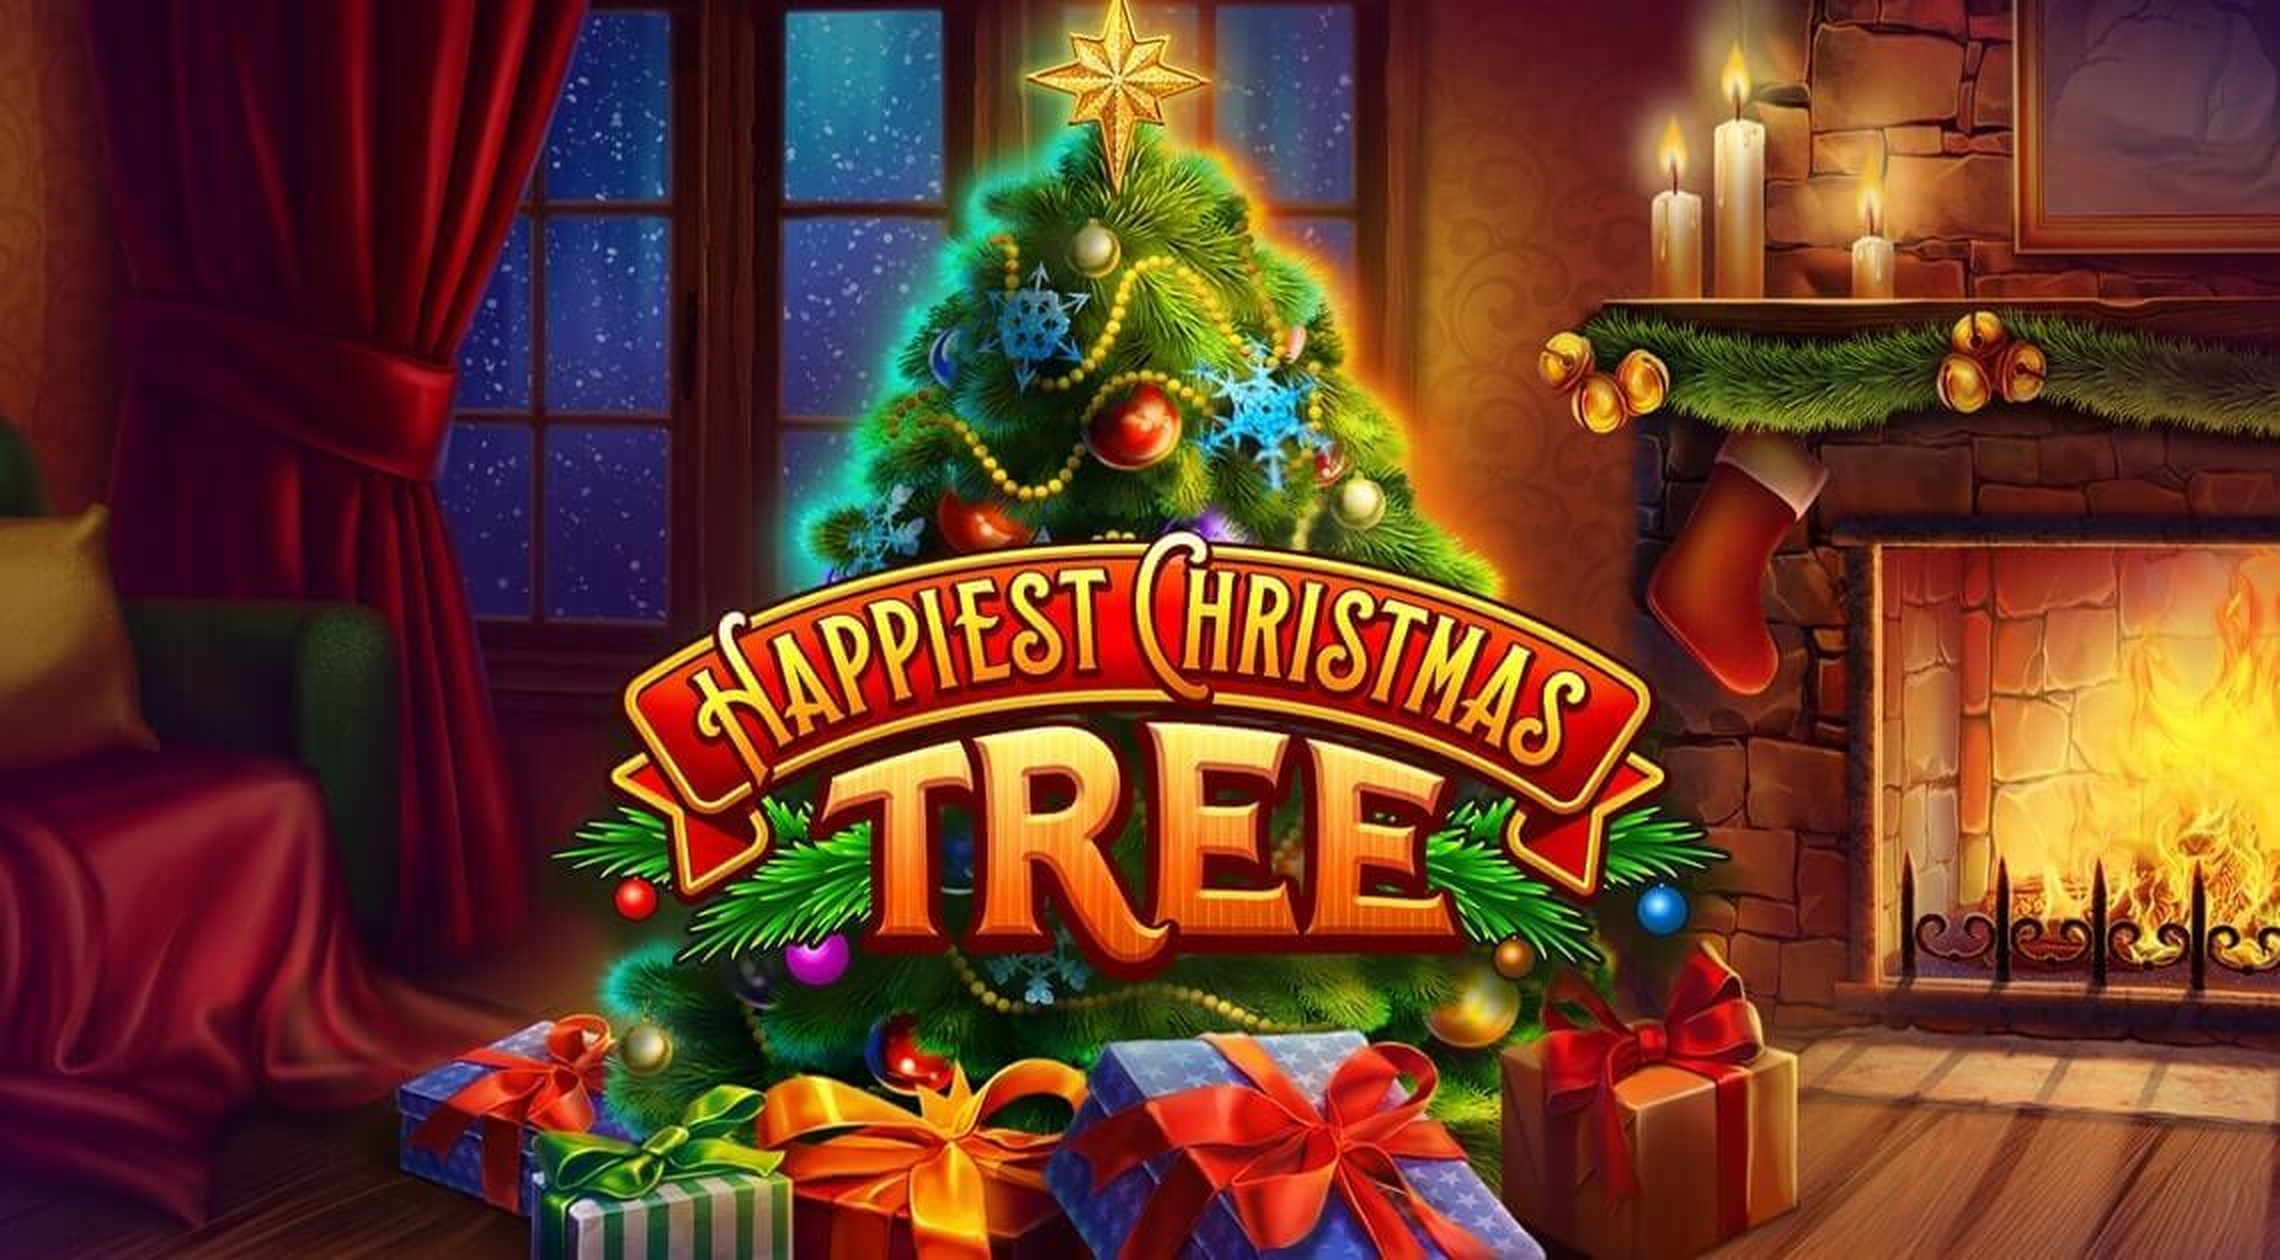 The Happiest Christmas Tree Online Slot Demo Game by Habanero